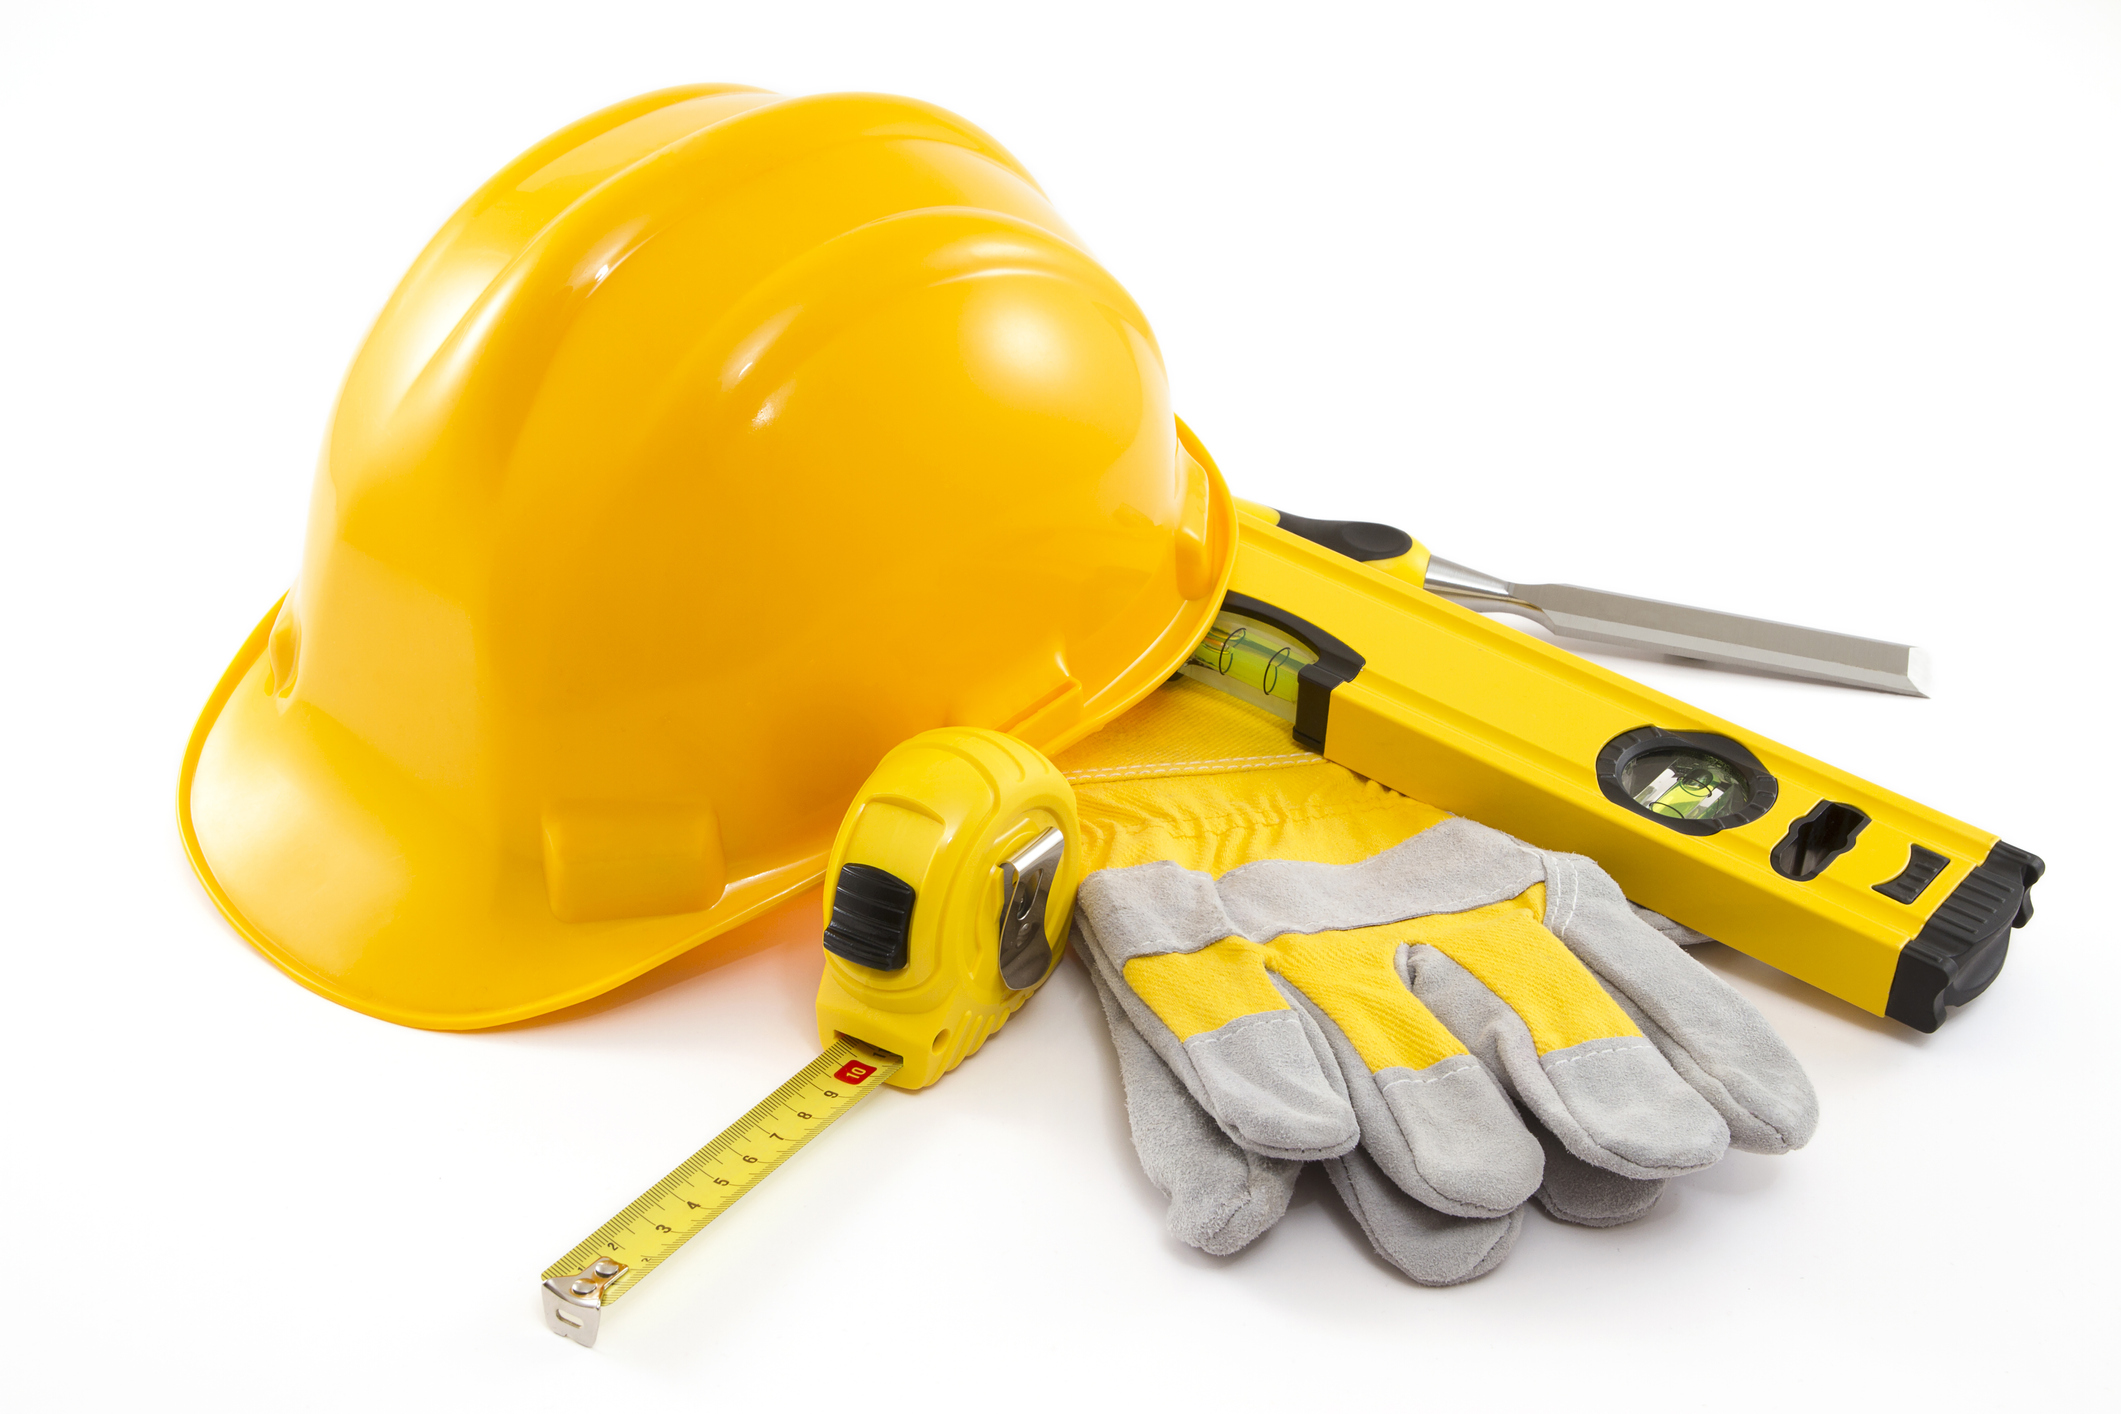 Assorted construction tools: work gloves, plumb level, hard hat.